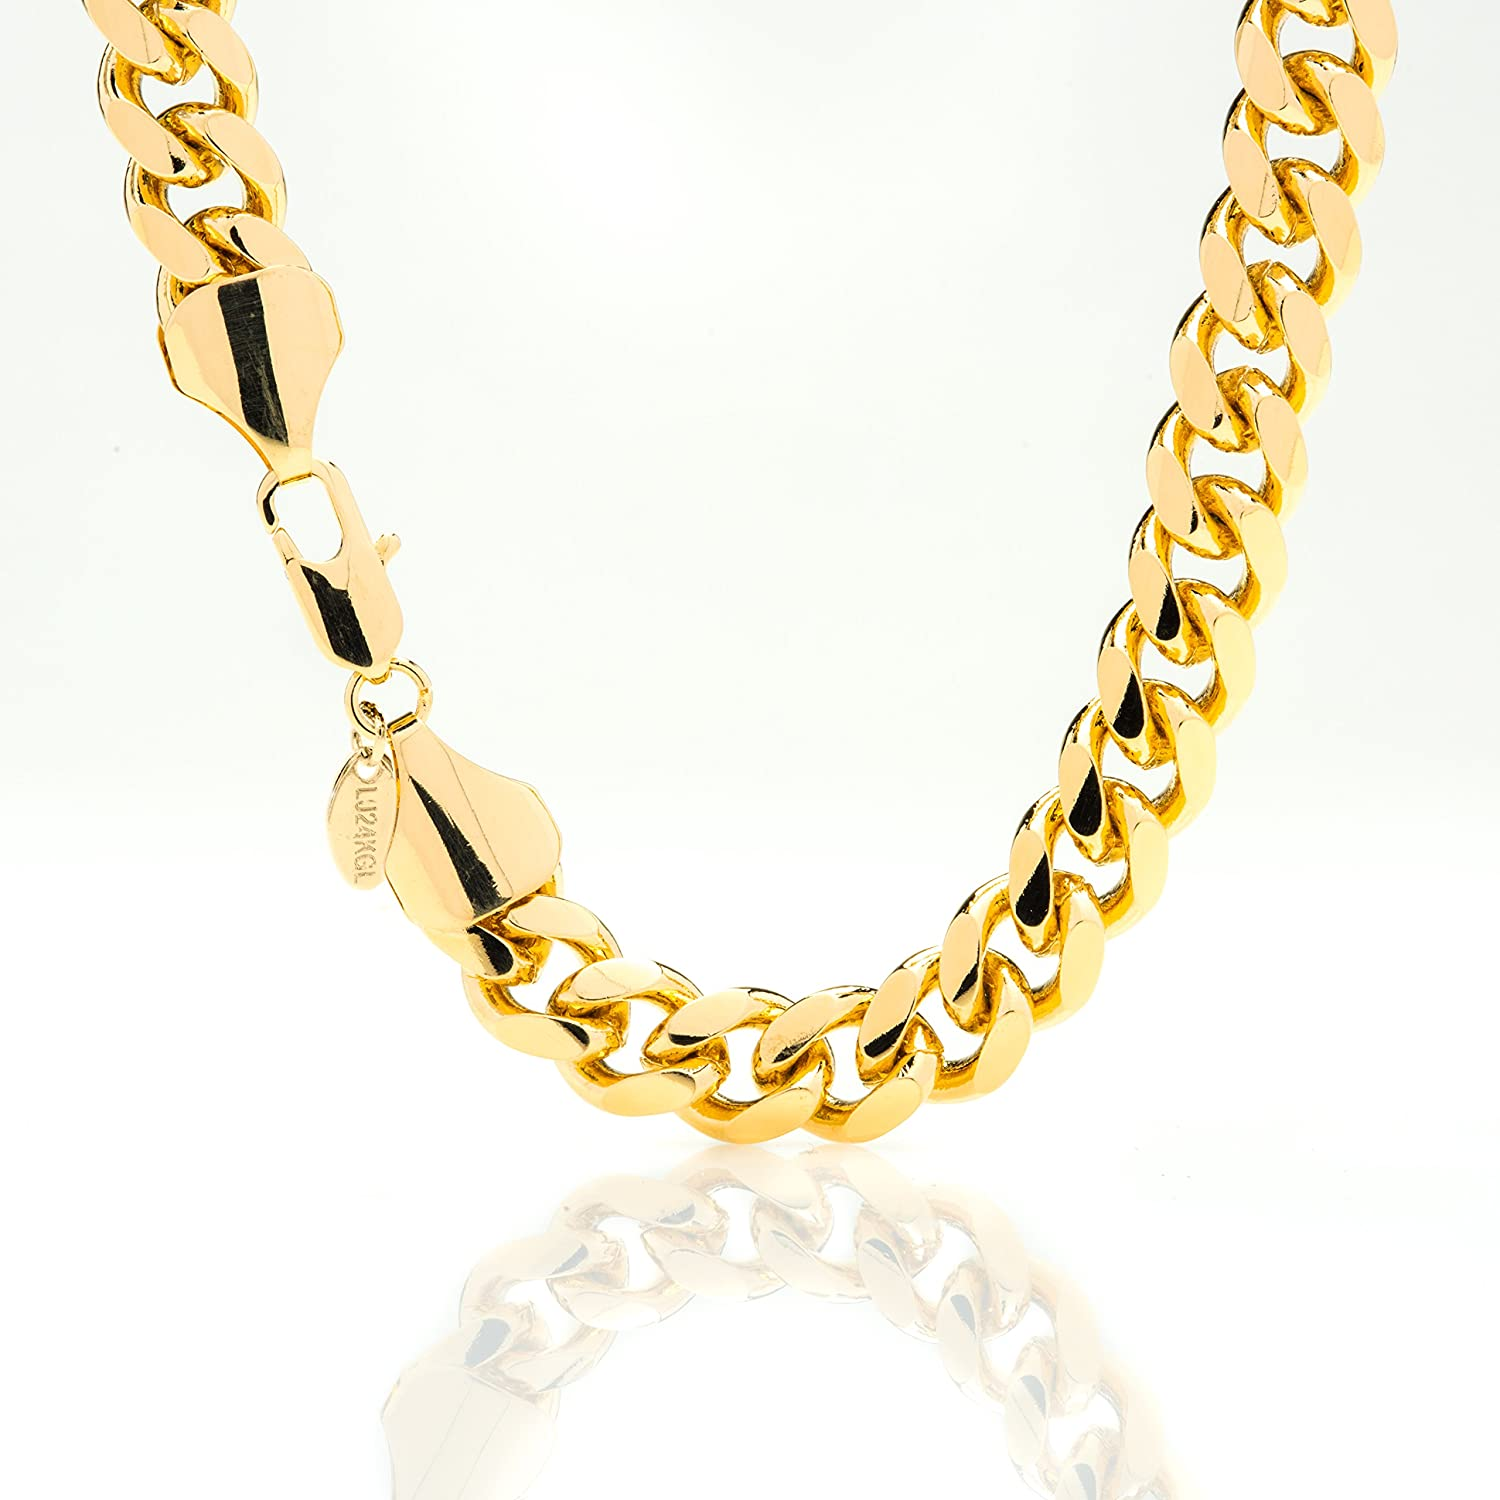 Amazon.com: Gold Cuban Link Chain 11MM, Round, 24K Overlay Premium ...